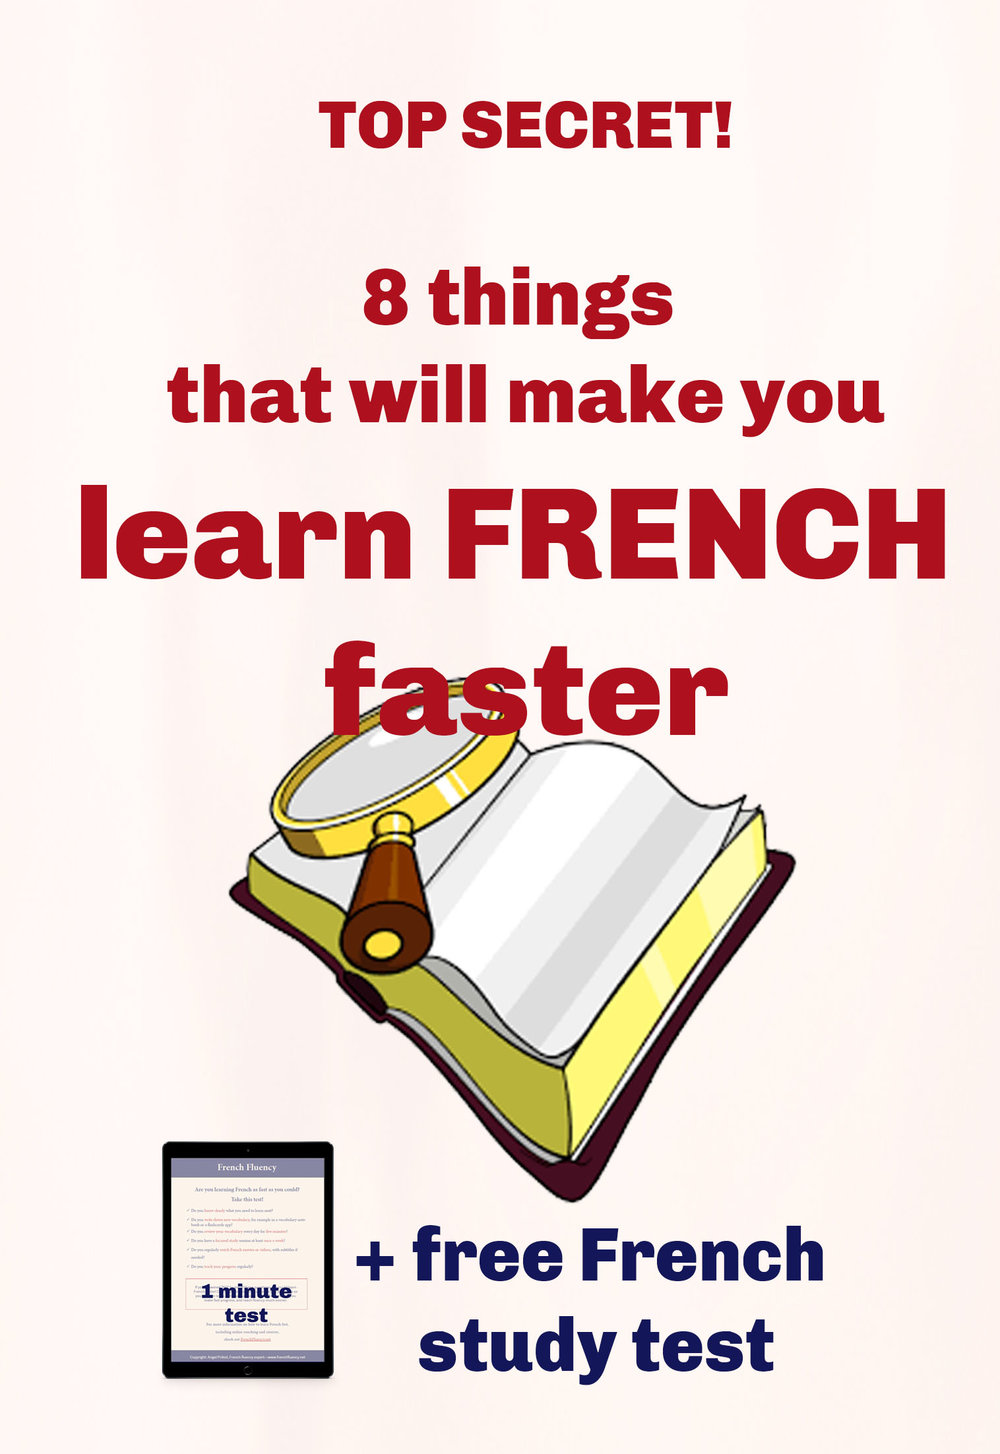 How to learn French faster